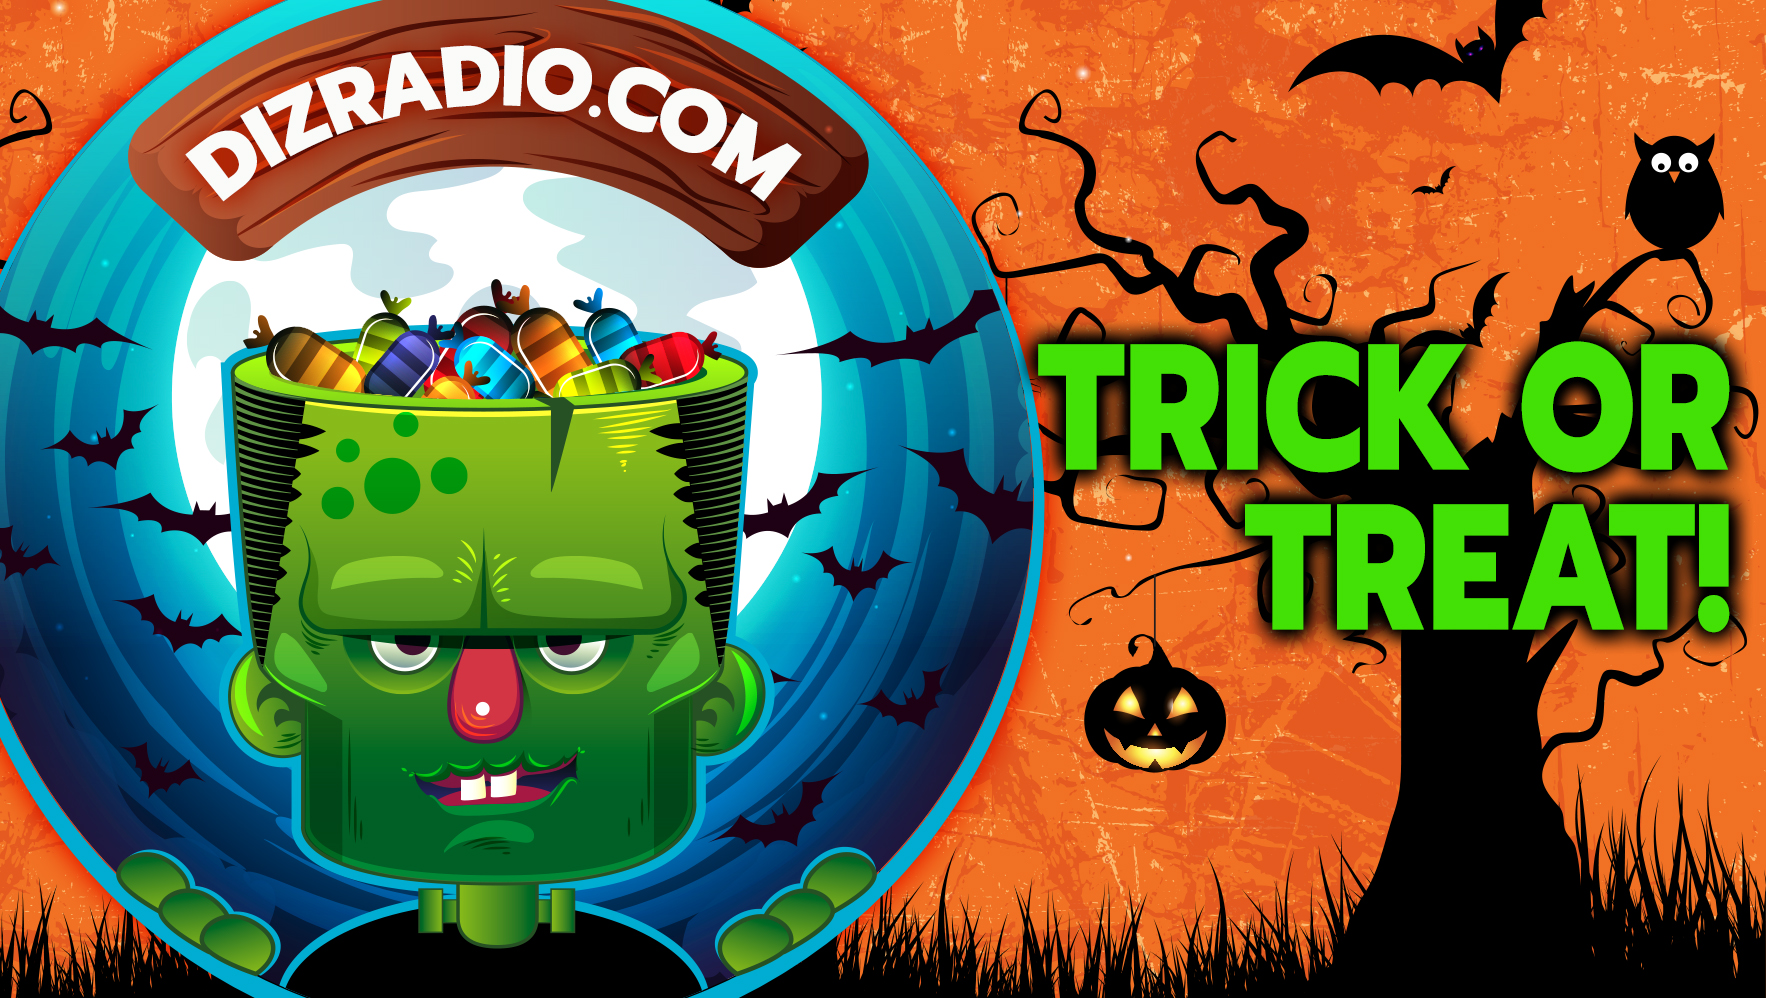 Happy HalloWishes from DizRadio! Get Some Halloween Tricks and Treats to Make October 31st Magically Spooky!